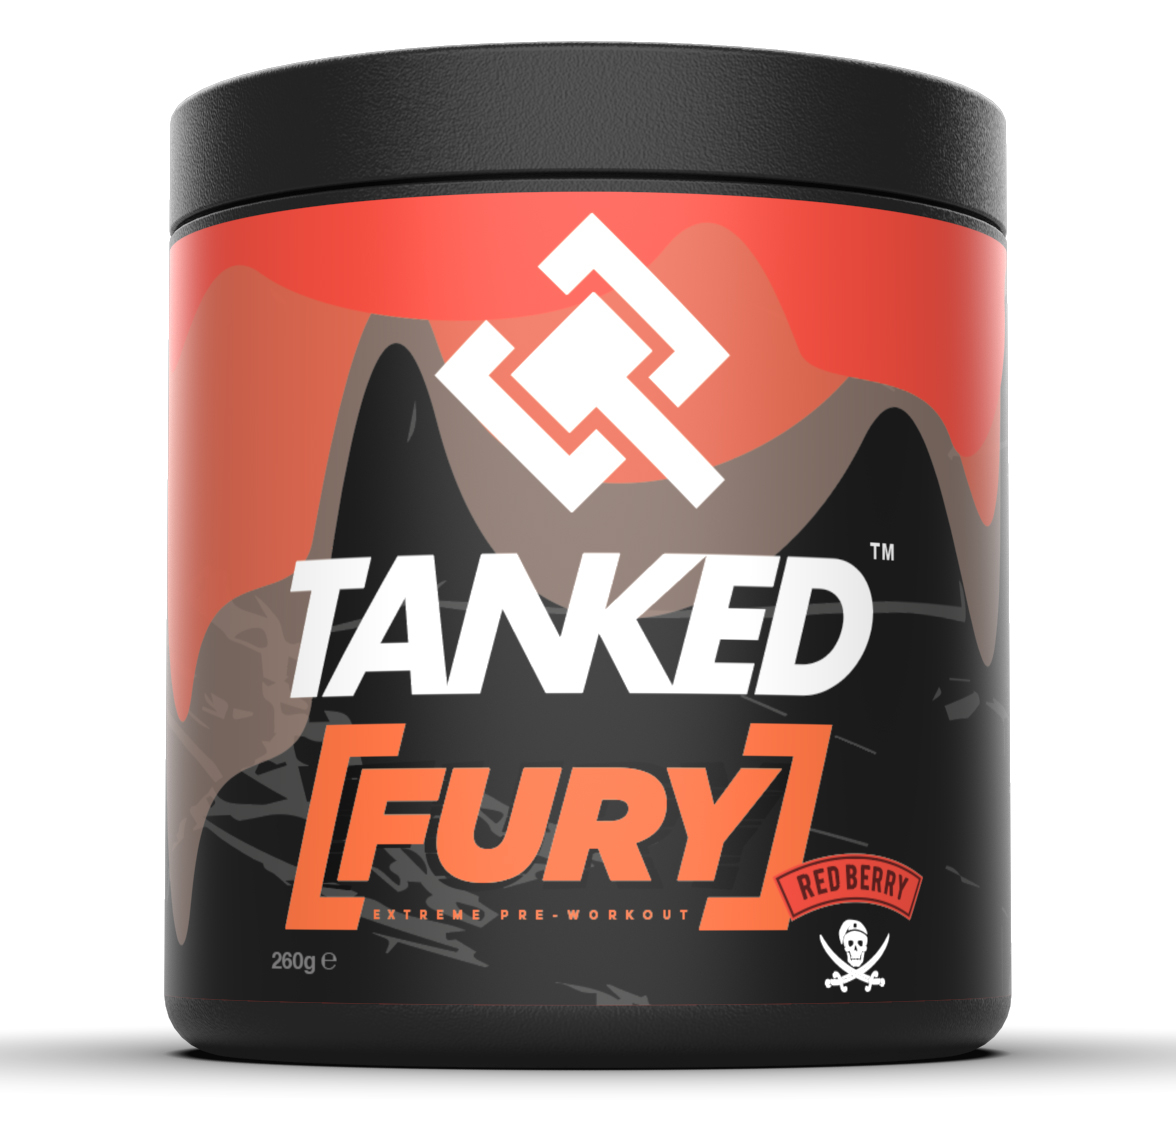 FURY - Red Berry 40 Servings Pre-Workout Supplements TANKED